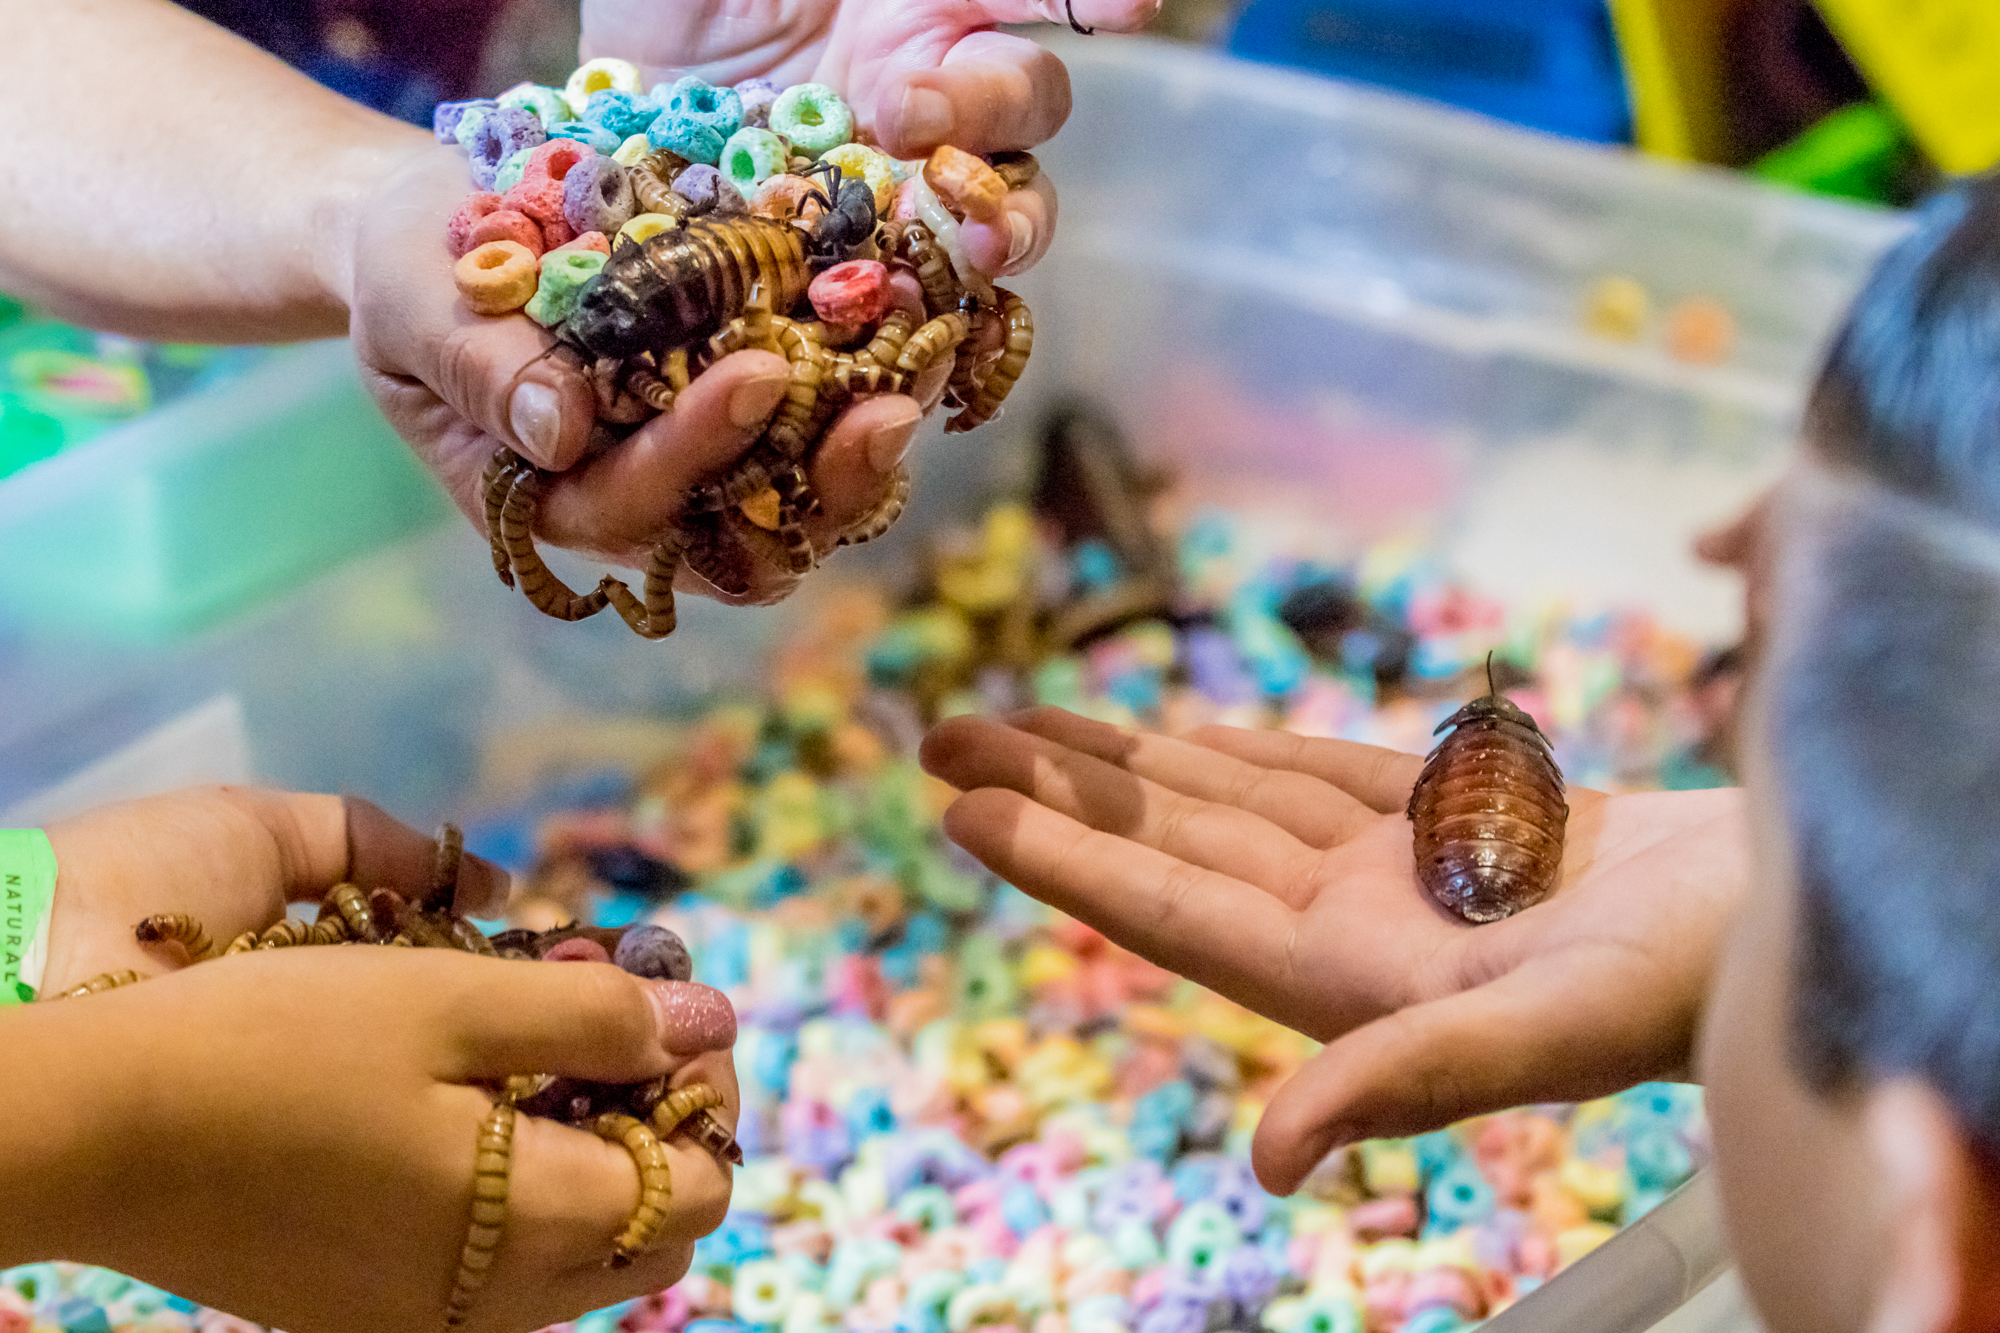 People hold an asosrtment of meal worms, cockroaches, and froot loops at the Los Angeles National History Museums 32nd Annual Bug Fair. This strange combination showed to be problematic when a child started to eat the froot loops. The Bug Fair took place on May 19, 2017. (Zane Meyer-Thornton/Corsair Photo)